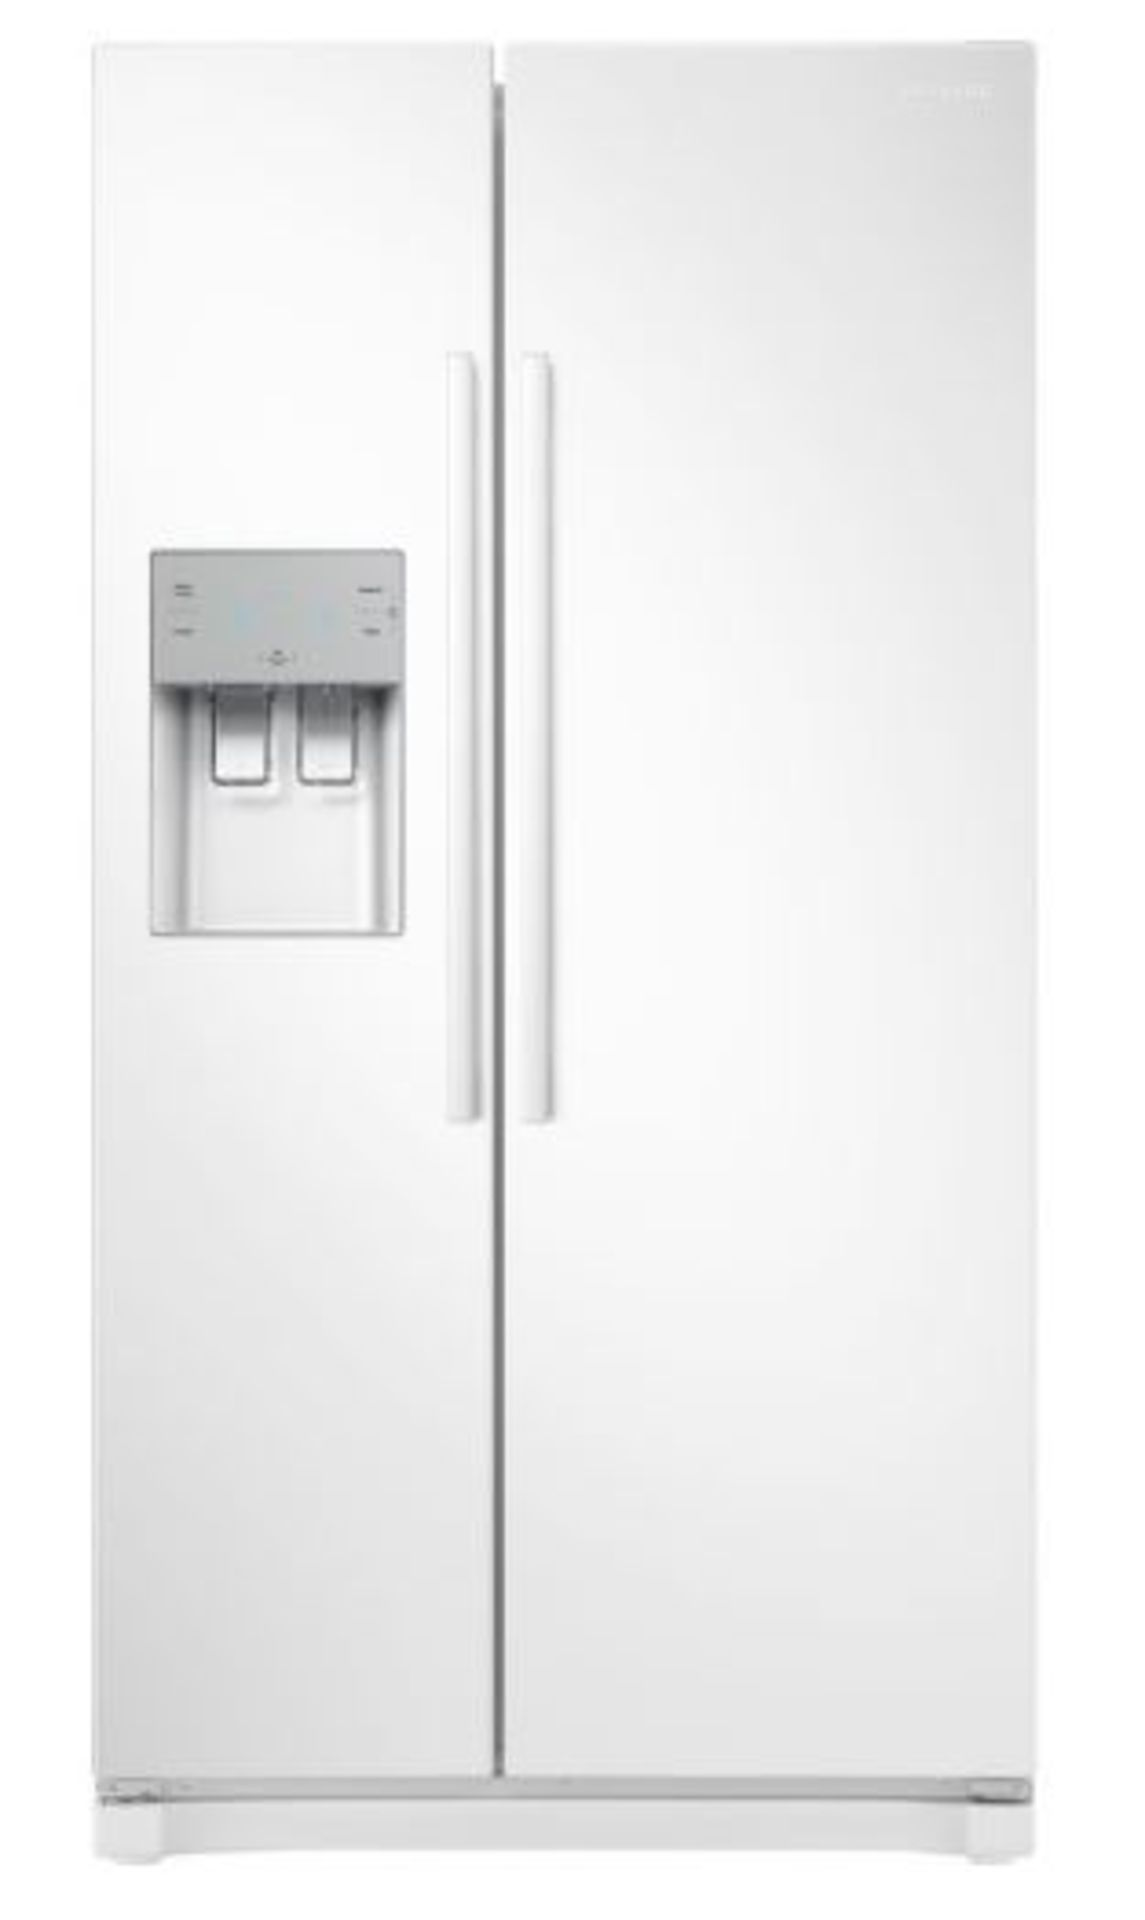 Pallet of 1 Samsung Water & Ice Fridge freezer. Latest selling price £999.99*